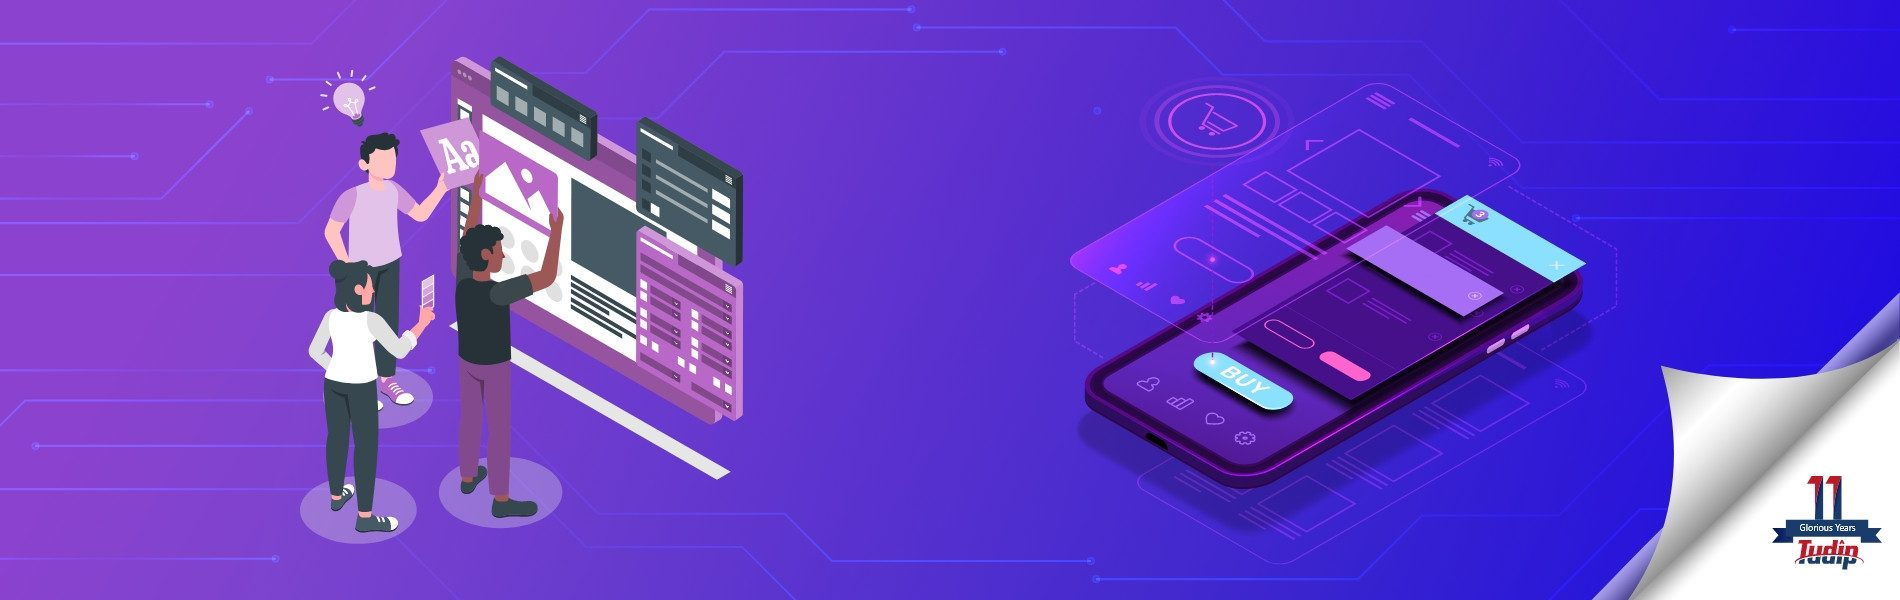 Another 5 UI Trends to Look Out for in 2021